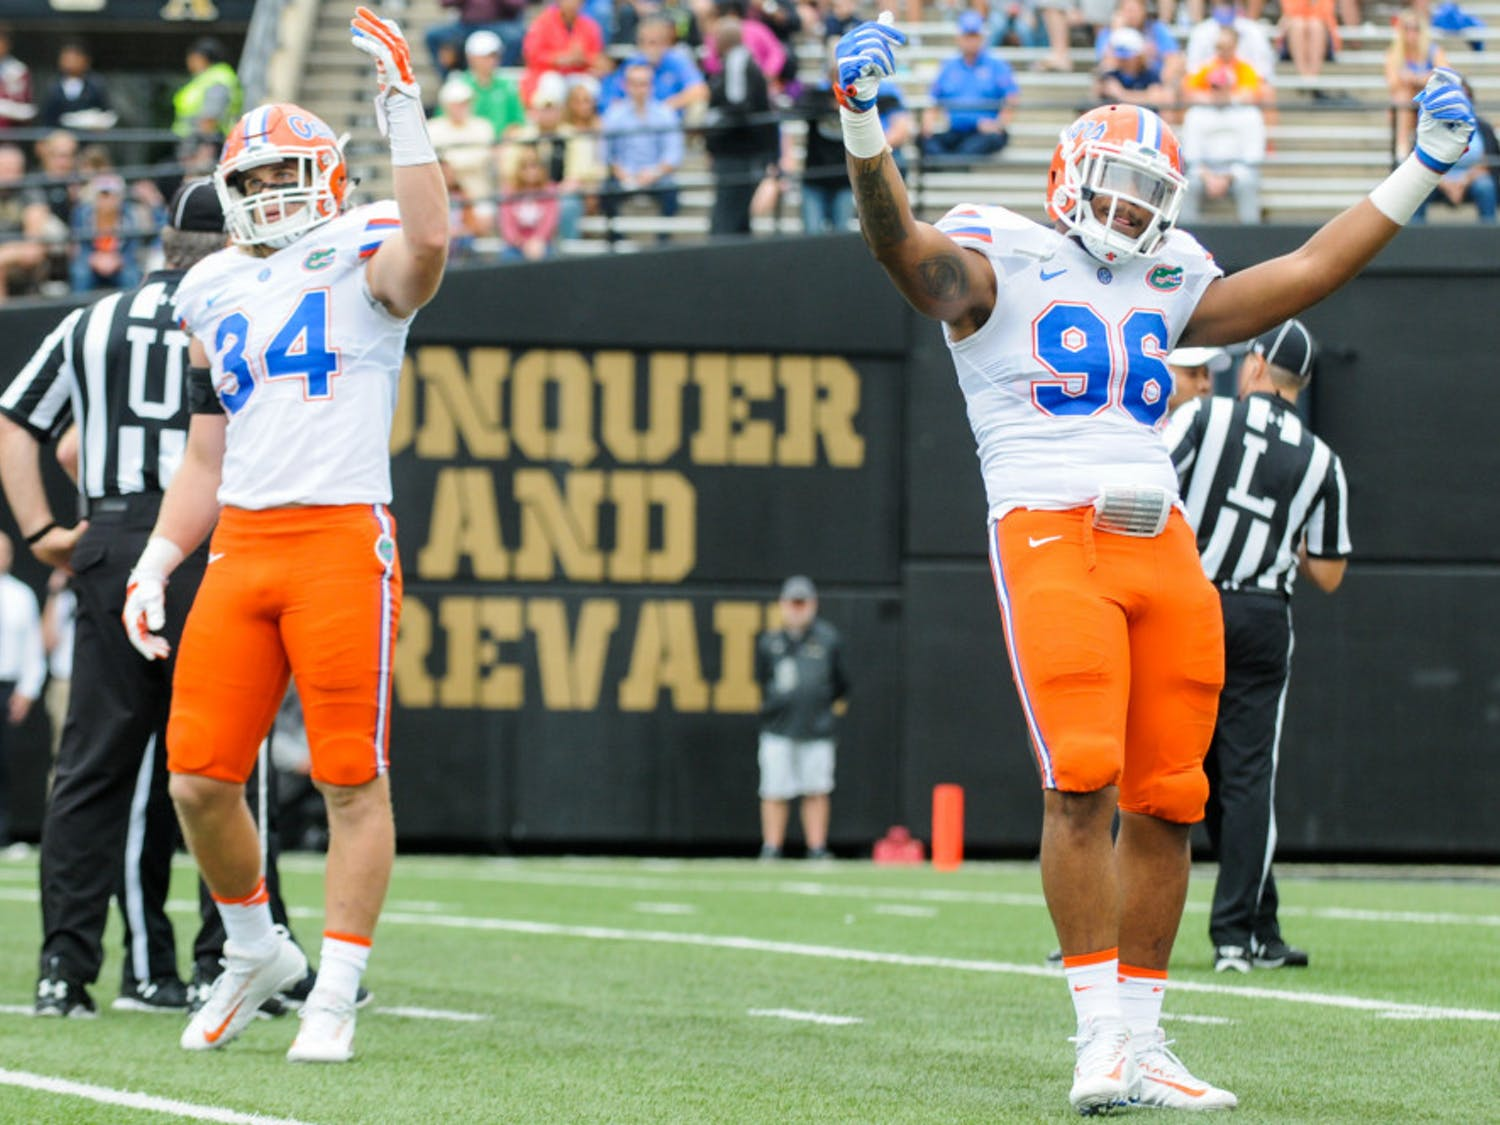 """Alex Anzalone (34) andCeCe Jefferson (96)motion to the crowd during Florida's 13-6 win over Vanderbilt on Oct. 1 in Nashville. """"He doesn't hold anything back,"""" linebacker Jarrad Davis said of Anzalone. """"He lets everything go, and that's what we want from our teammates."""""""